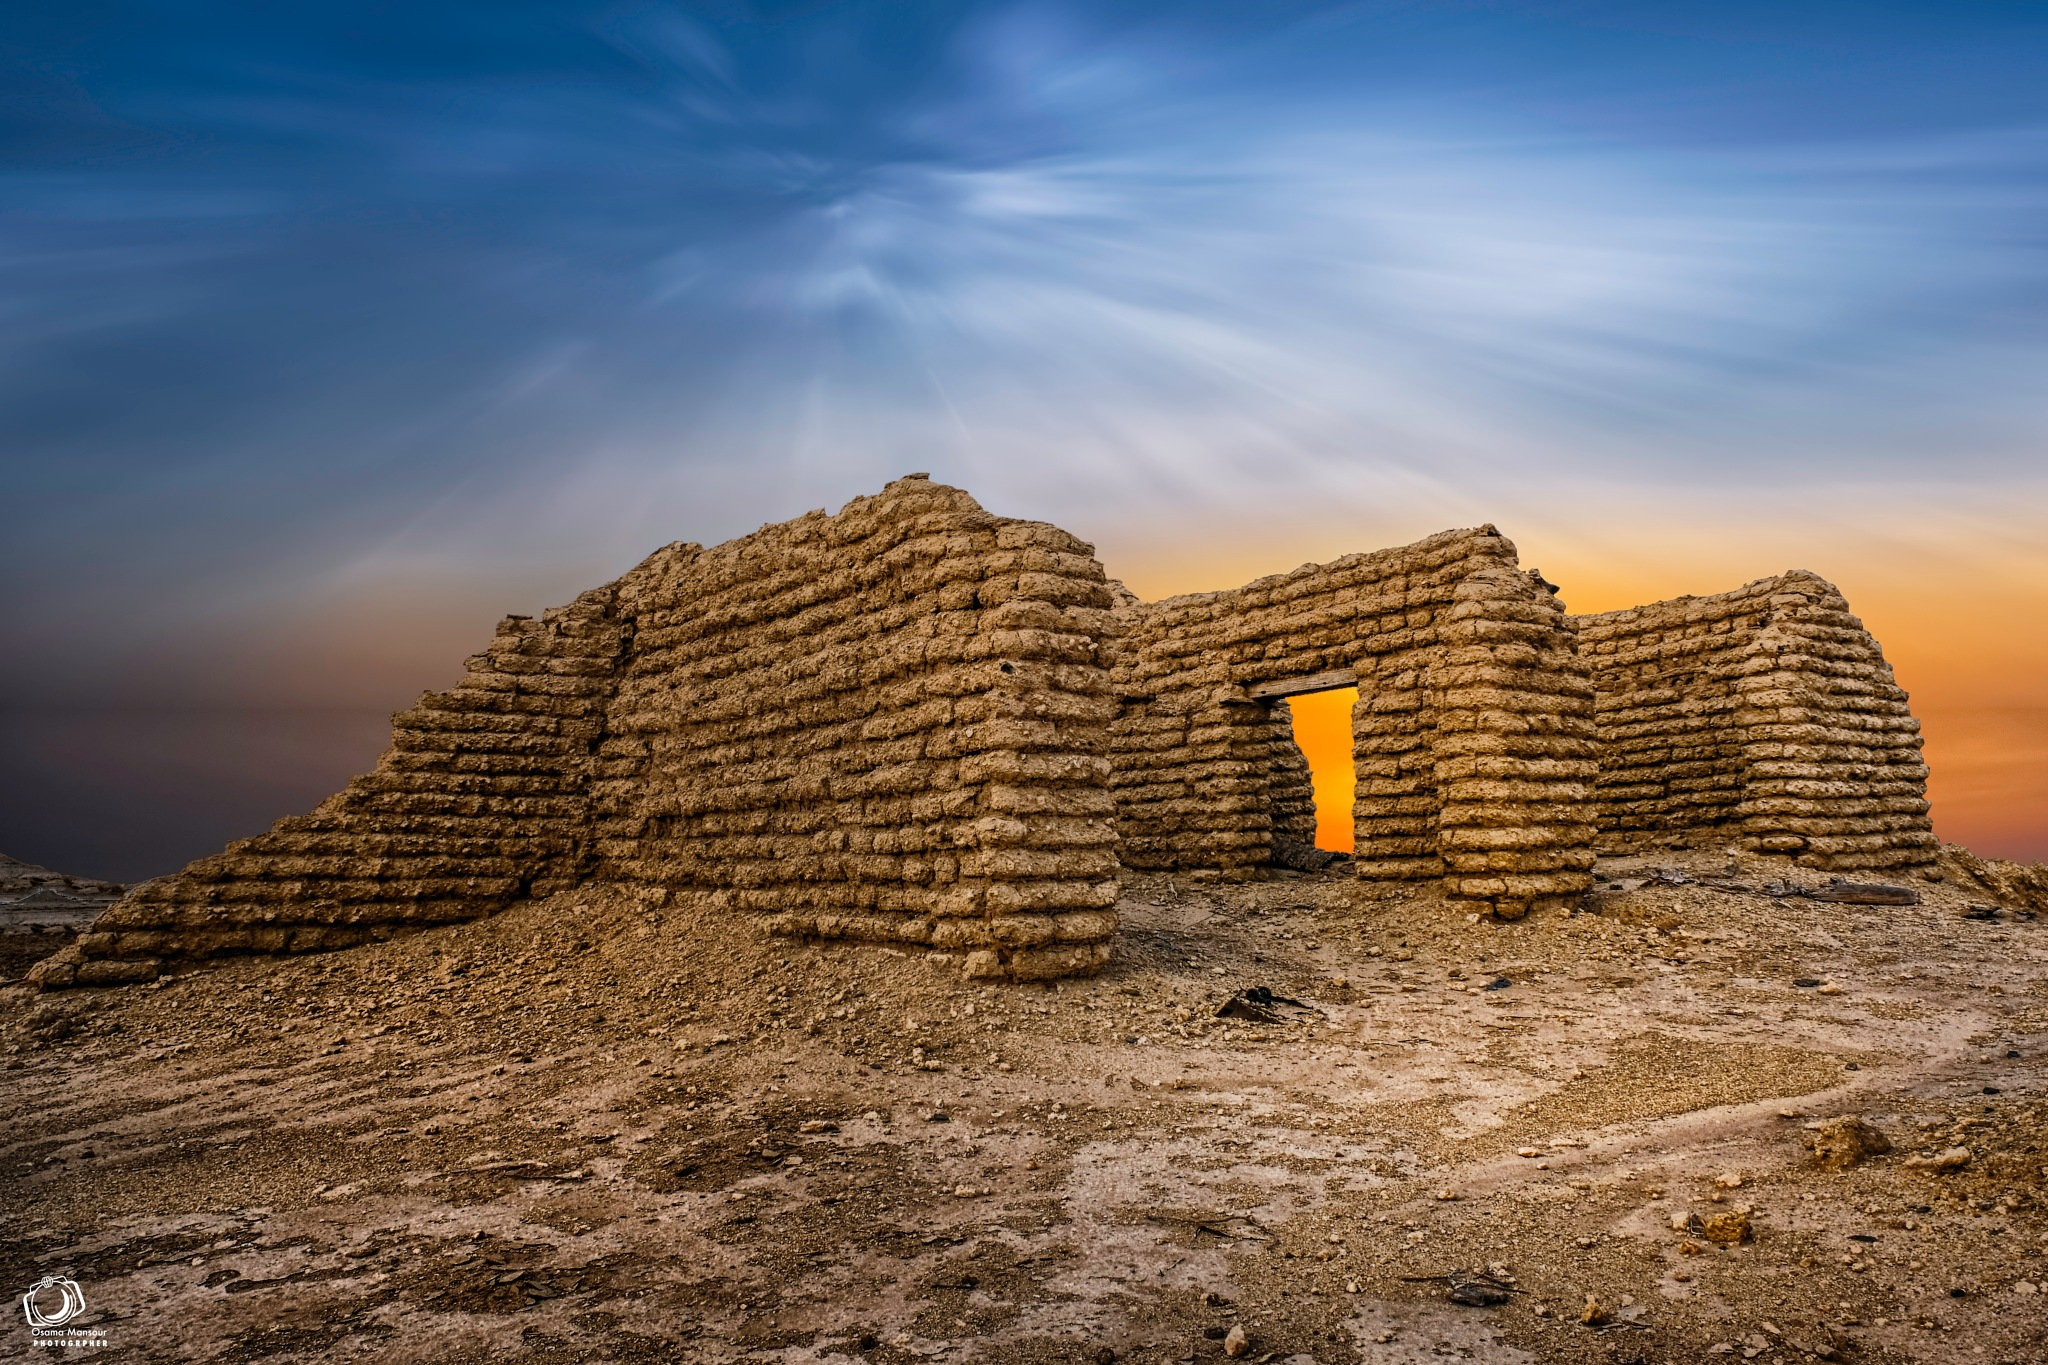 Ghost town by Osama Mansour